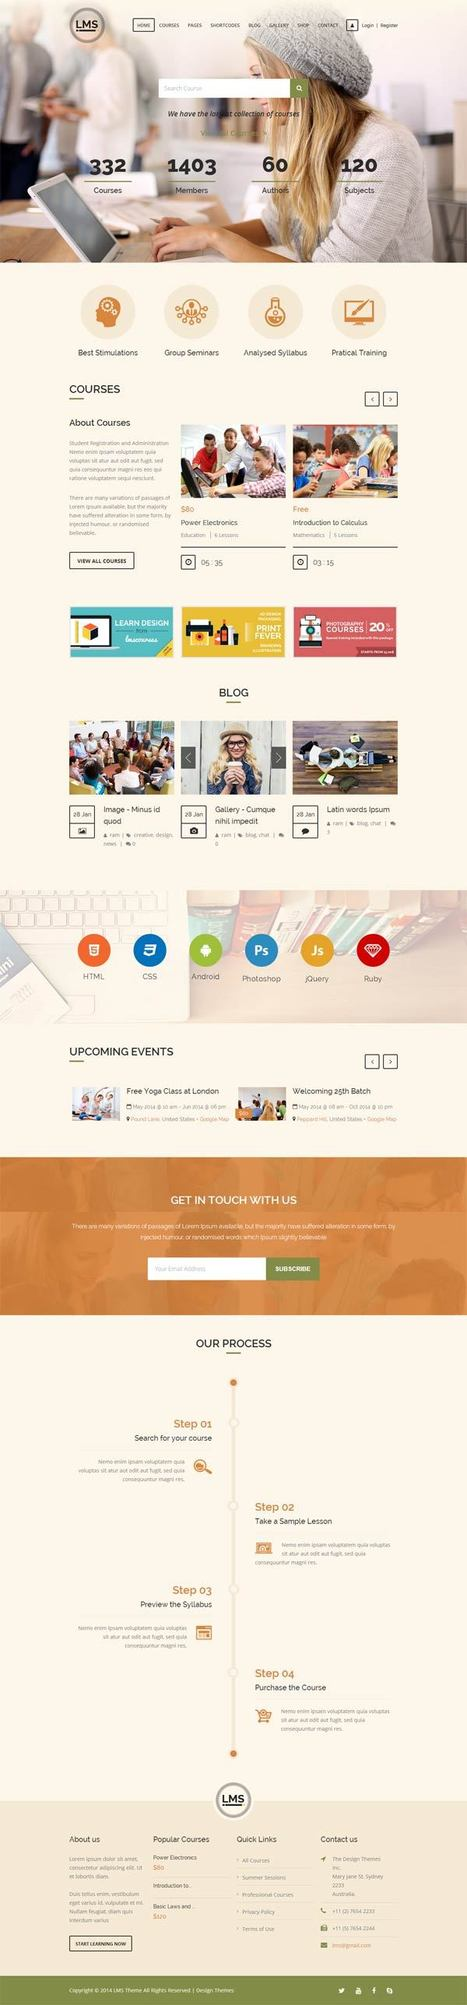 LMS Responsive Learning Management Wordpress Theme - ServerThemes.Net | Download Premium WordPress Themes | Scoop.it